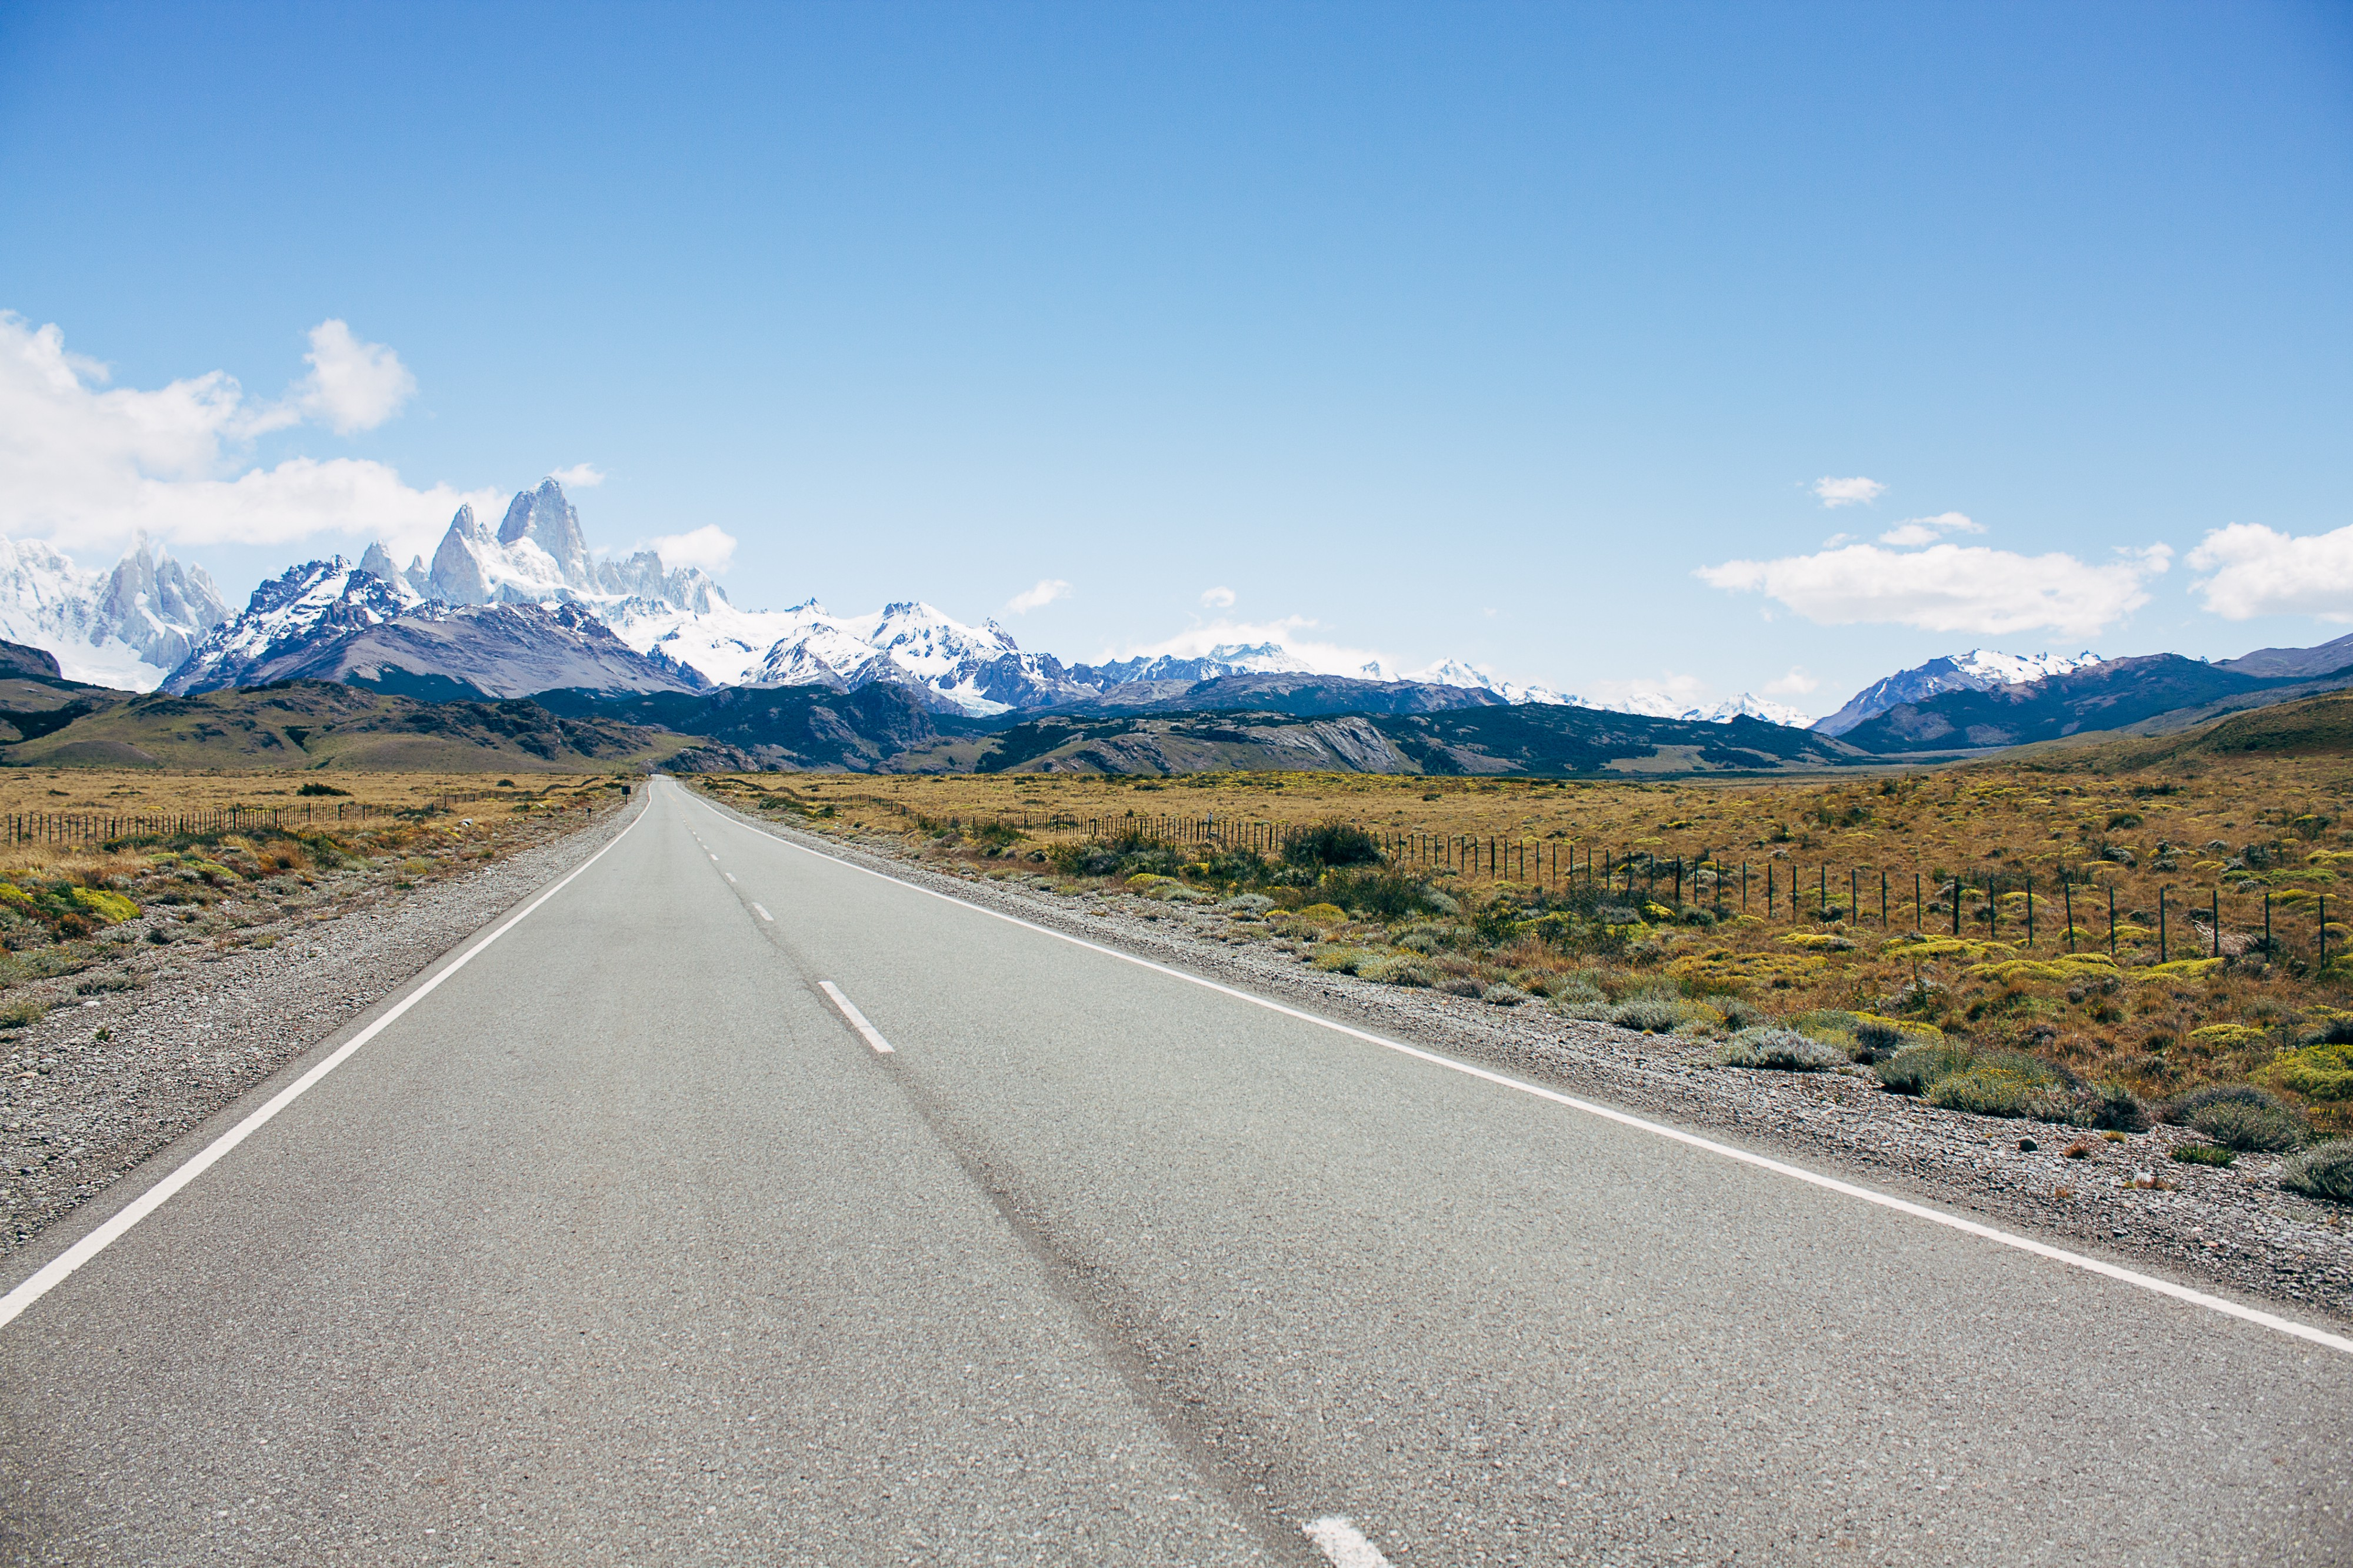 Photo of a long open road with snow=capped mountains in the distance by Ana Viegas.